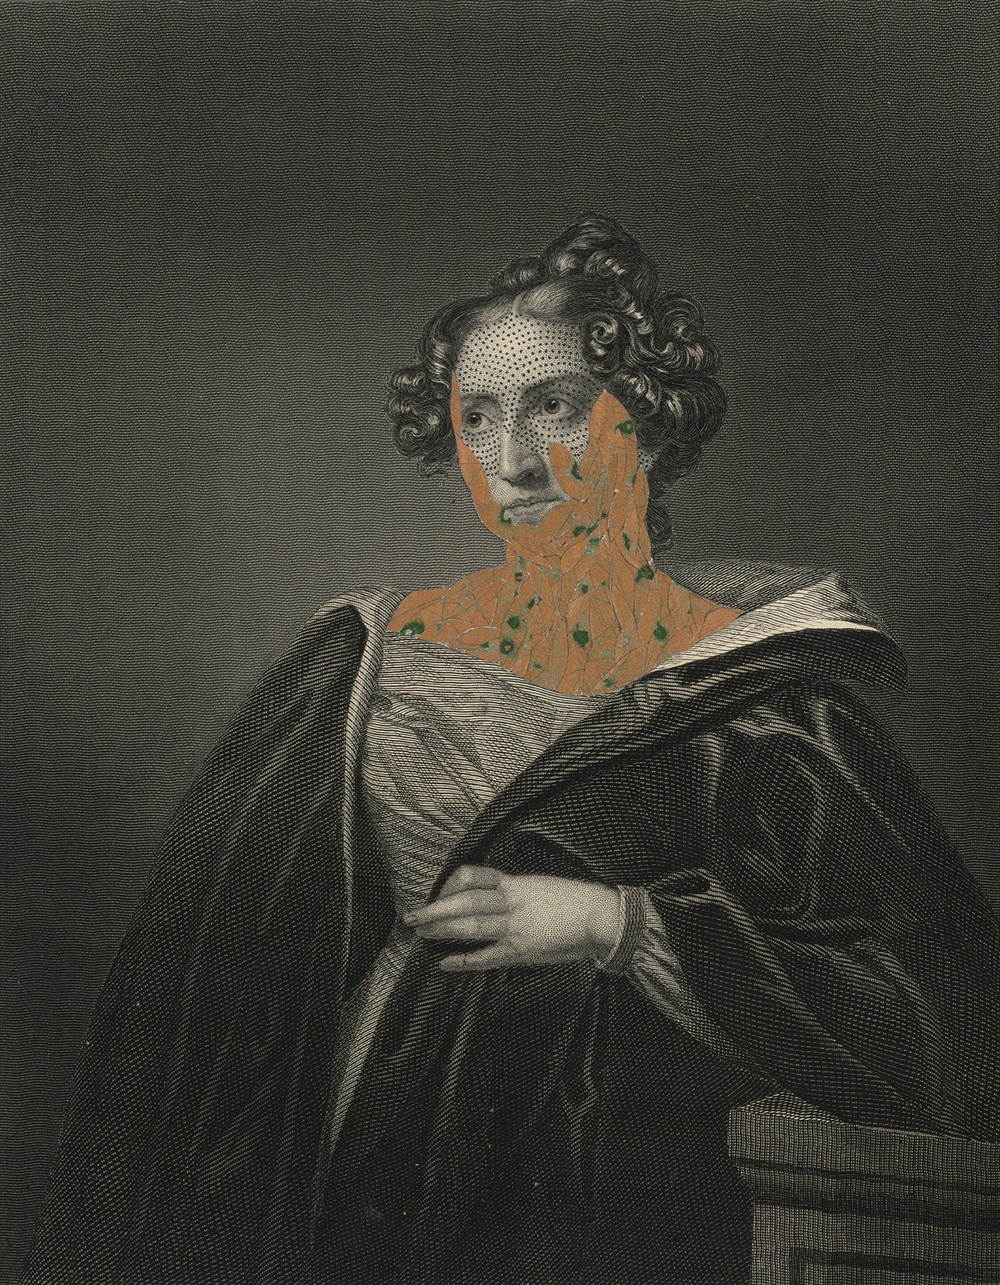 "Mrs. John Pettigrew 1860/2014  , ink and collage on 19th century engraving, 7.5"" x 5"", 2014"